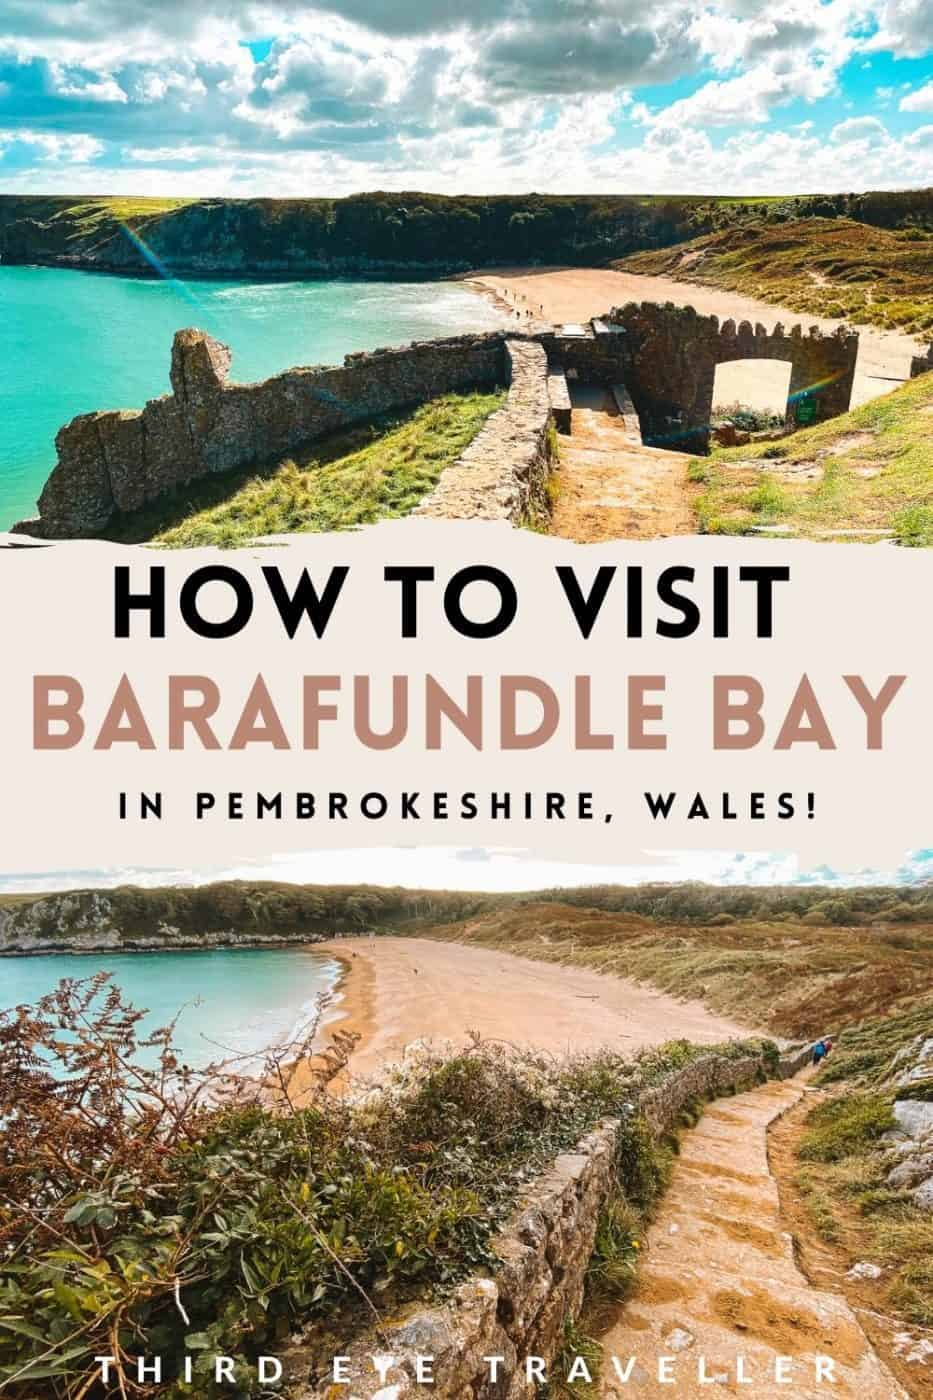 How to Visit Barafundle Bay in Pembrokeshire Wales